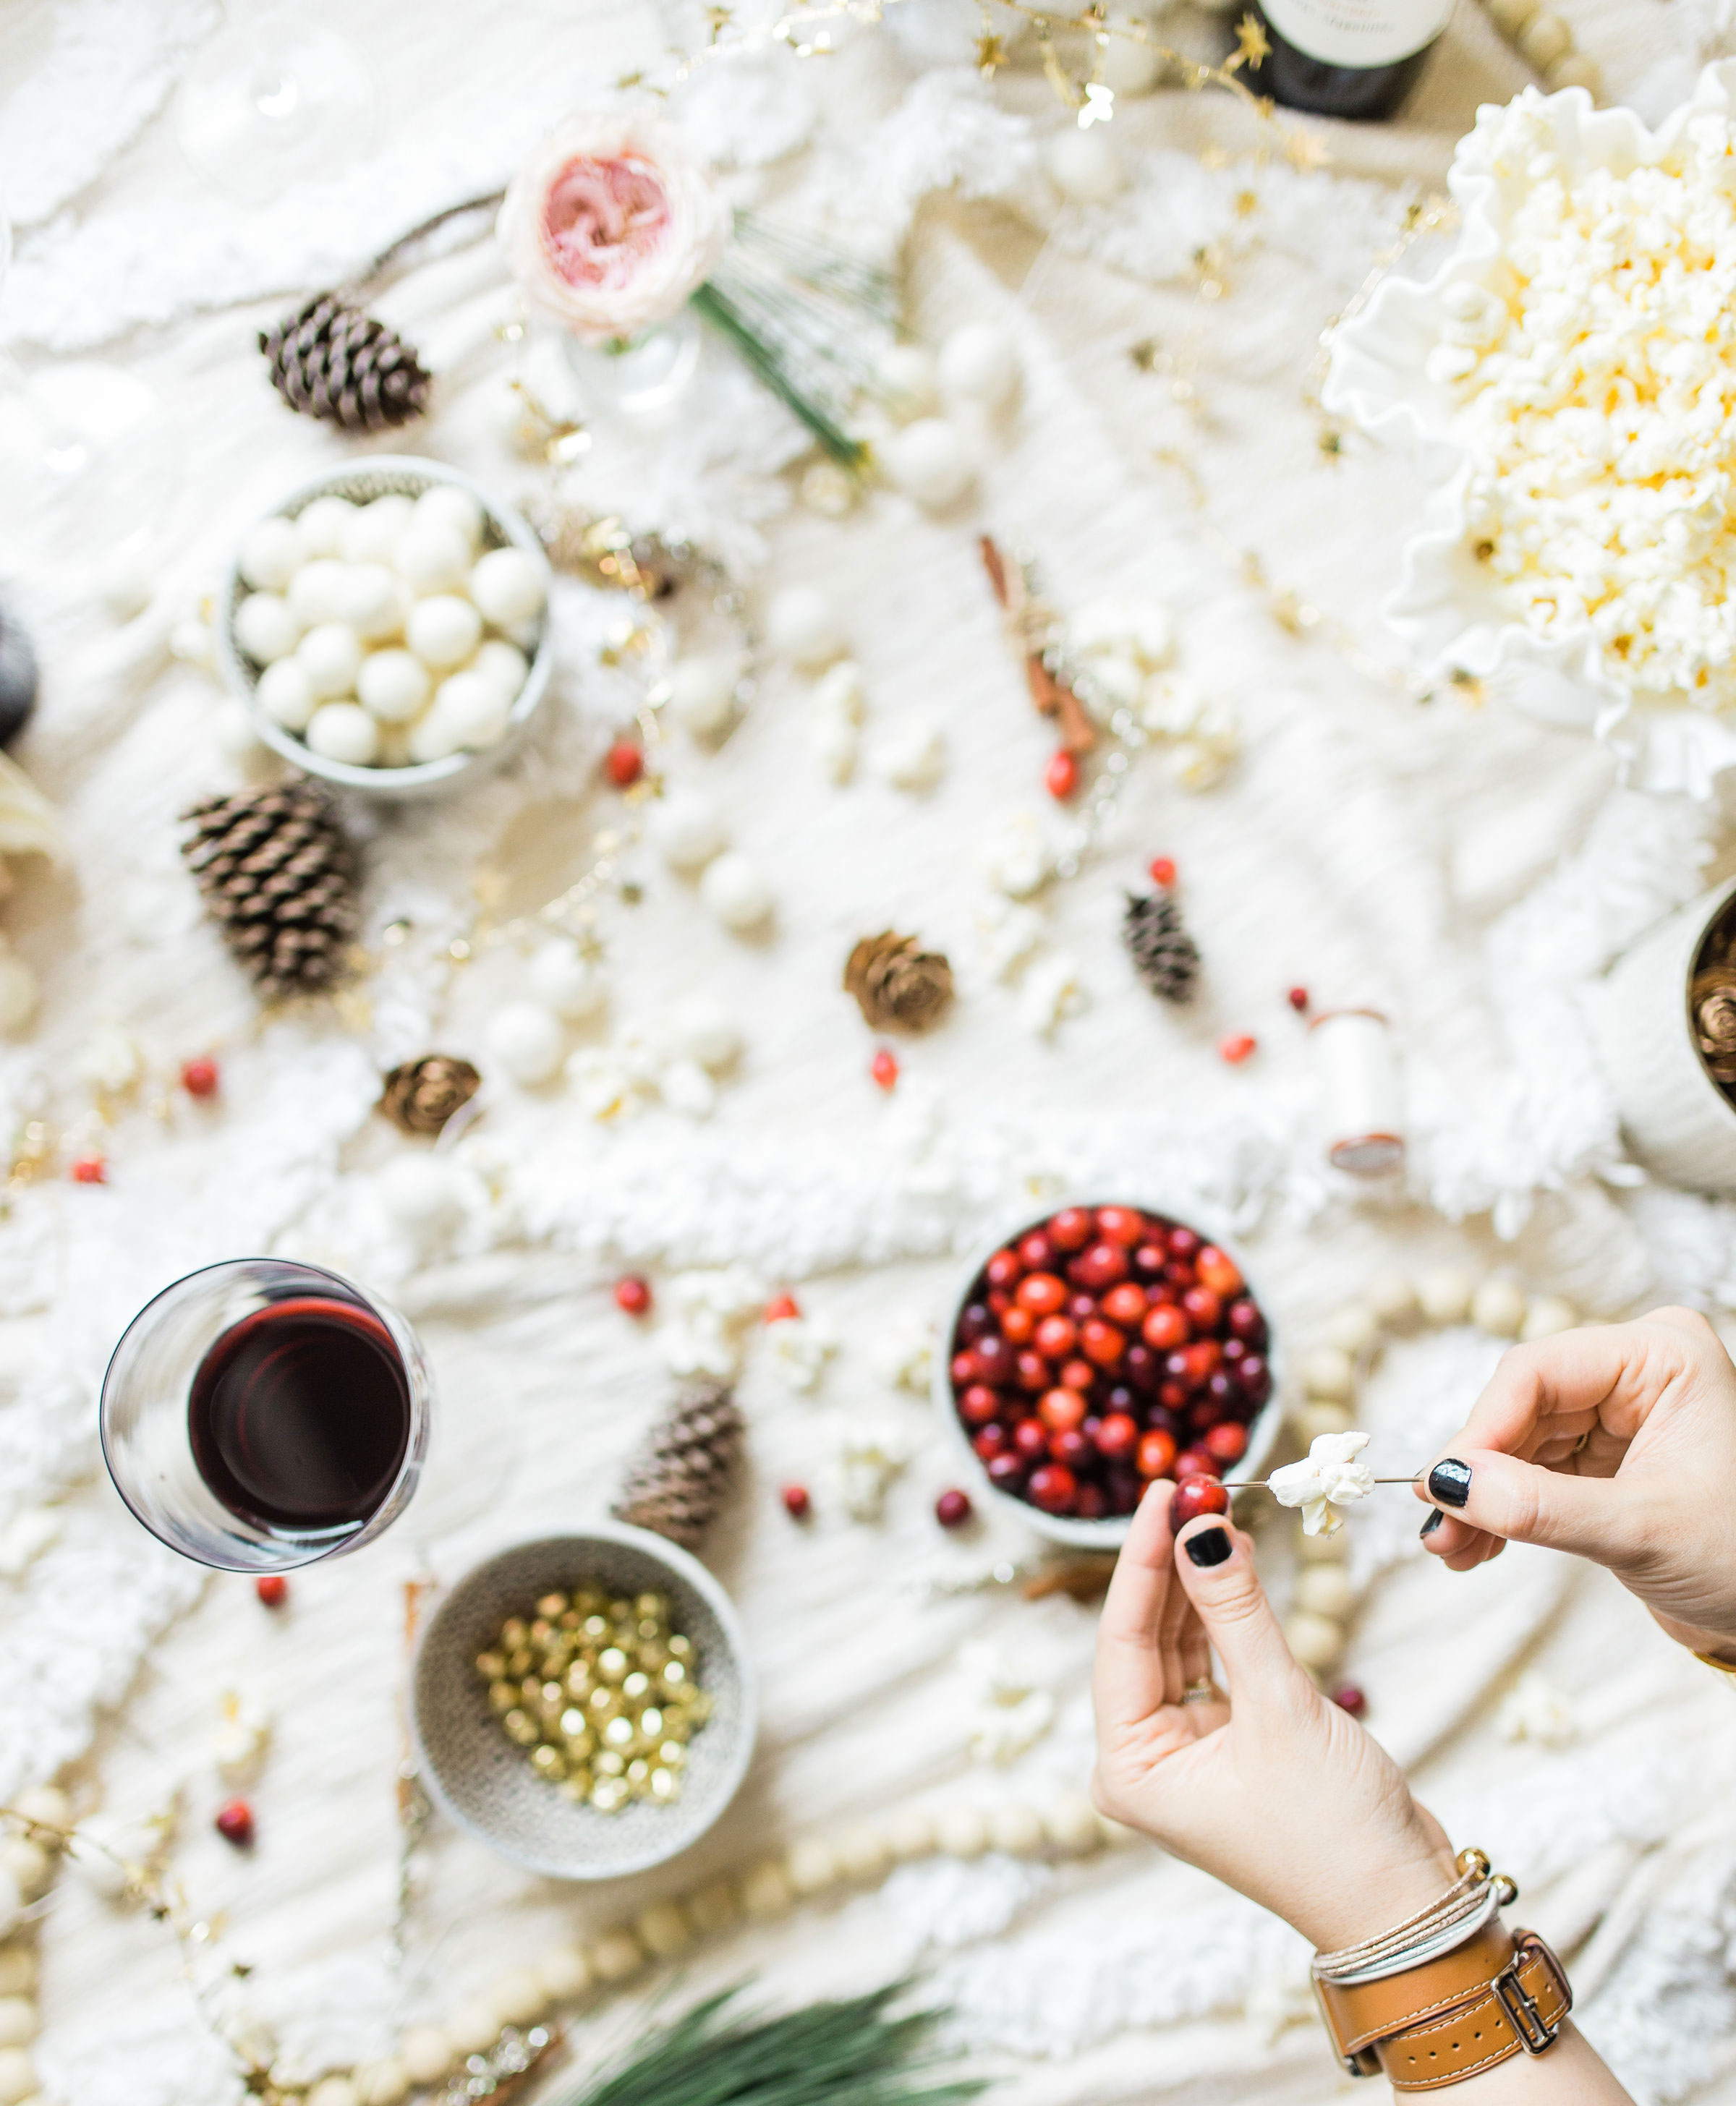 Looking for your next holiday party idea? Sip on wine and nibble on snacks while you make beautiful DIY holiday garlands with friends! (Bonus: The DIY holiday garland making party sets the stage for the perfect girls night in!) Click through for the details. #holidayparty #christmasparty #diychristmas #diyholidays #garland #holidaygarland #diyholidaygarland #diygarland #christmasgarland #holidaygirlsnight #christmasgirlsnight | glitterinc.com | @glitterinc